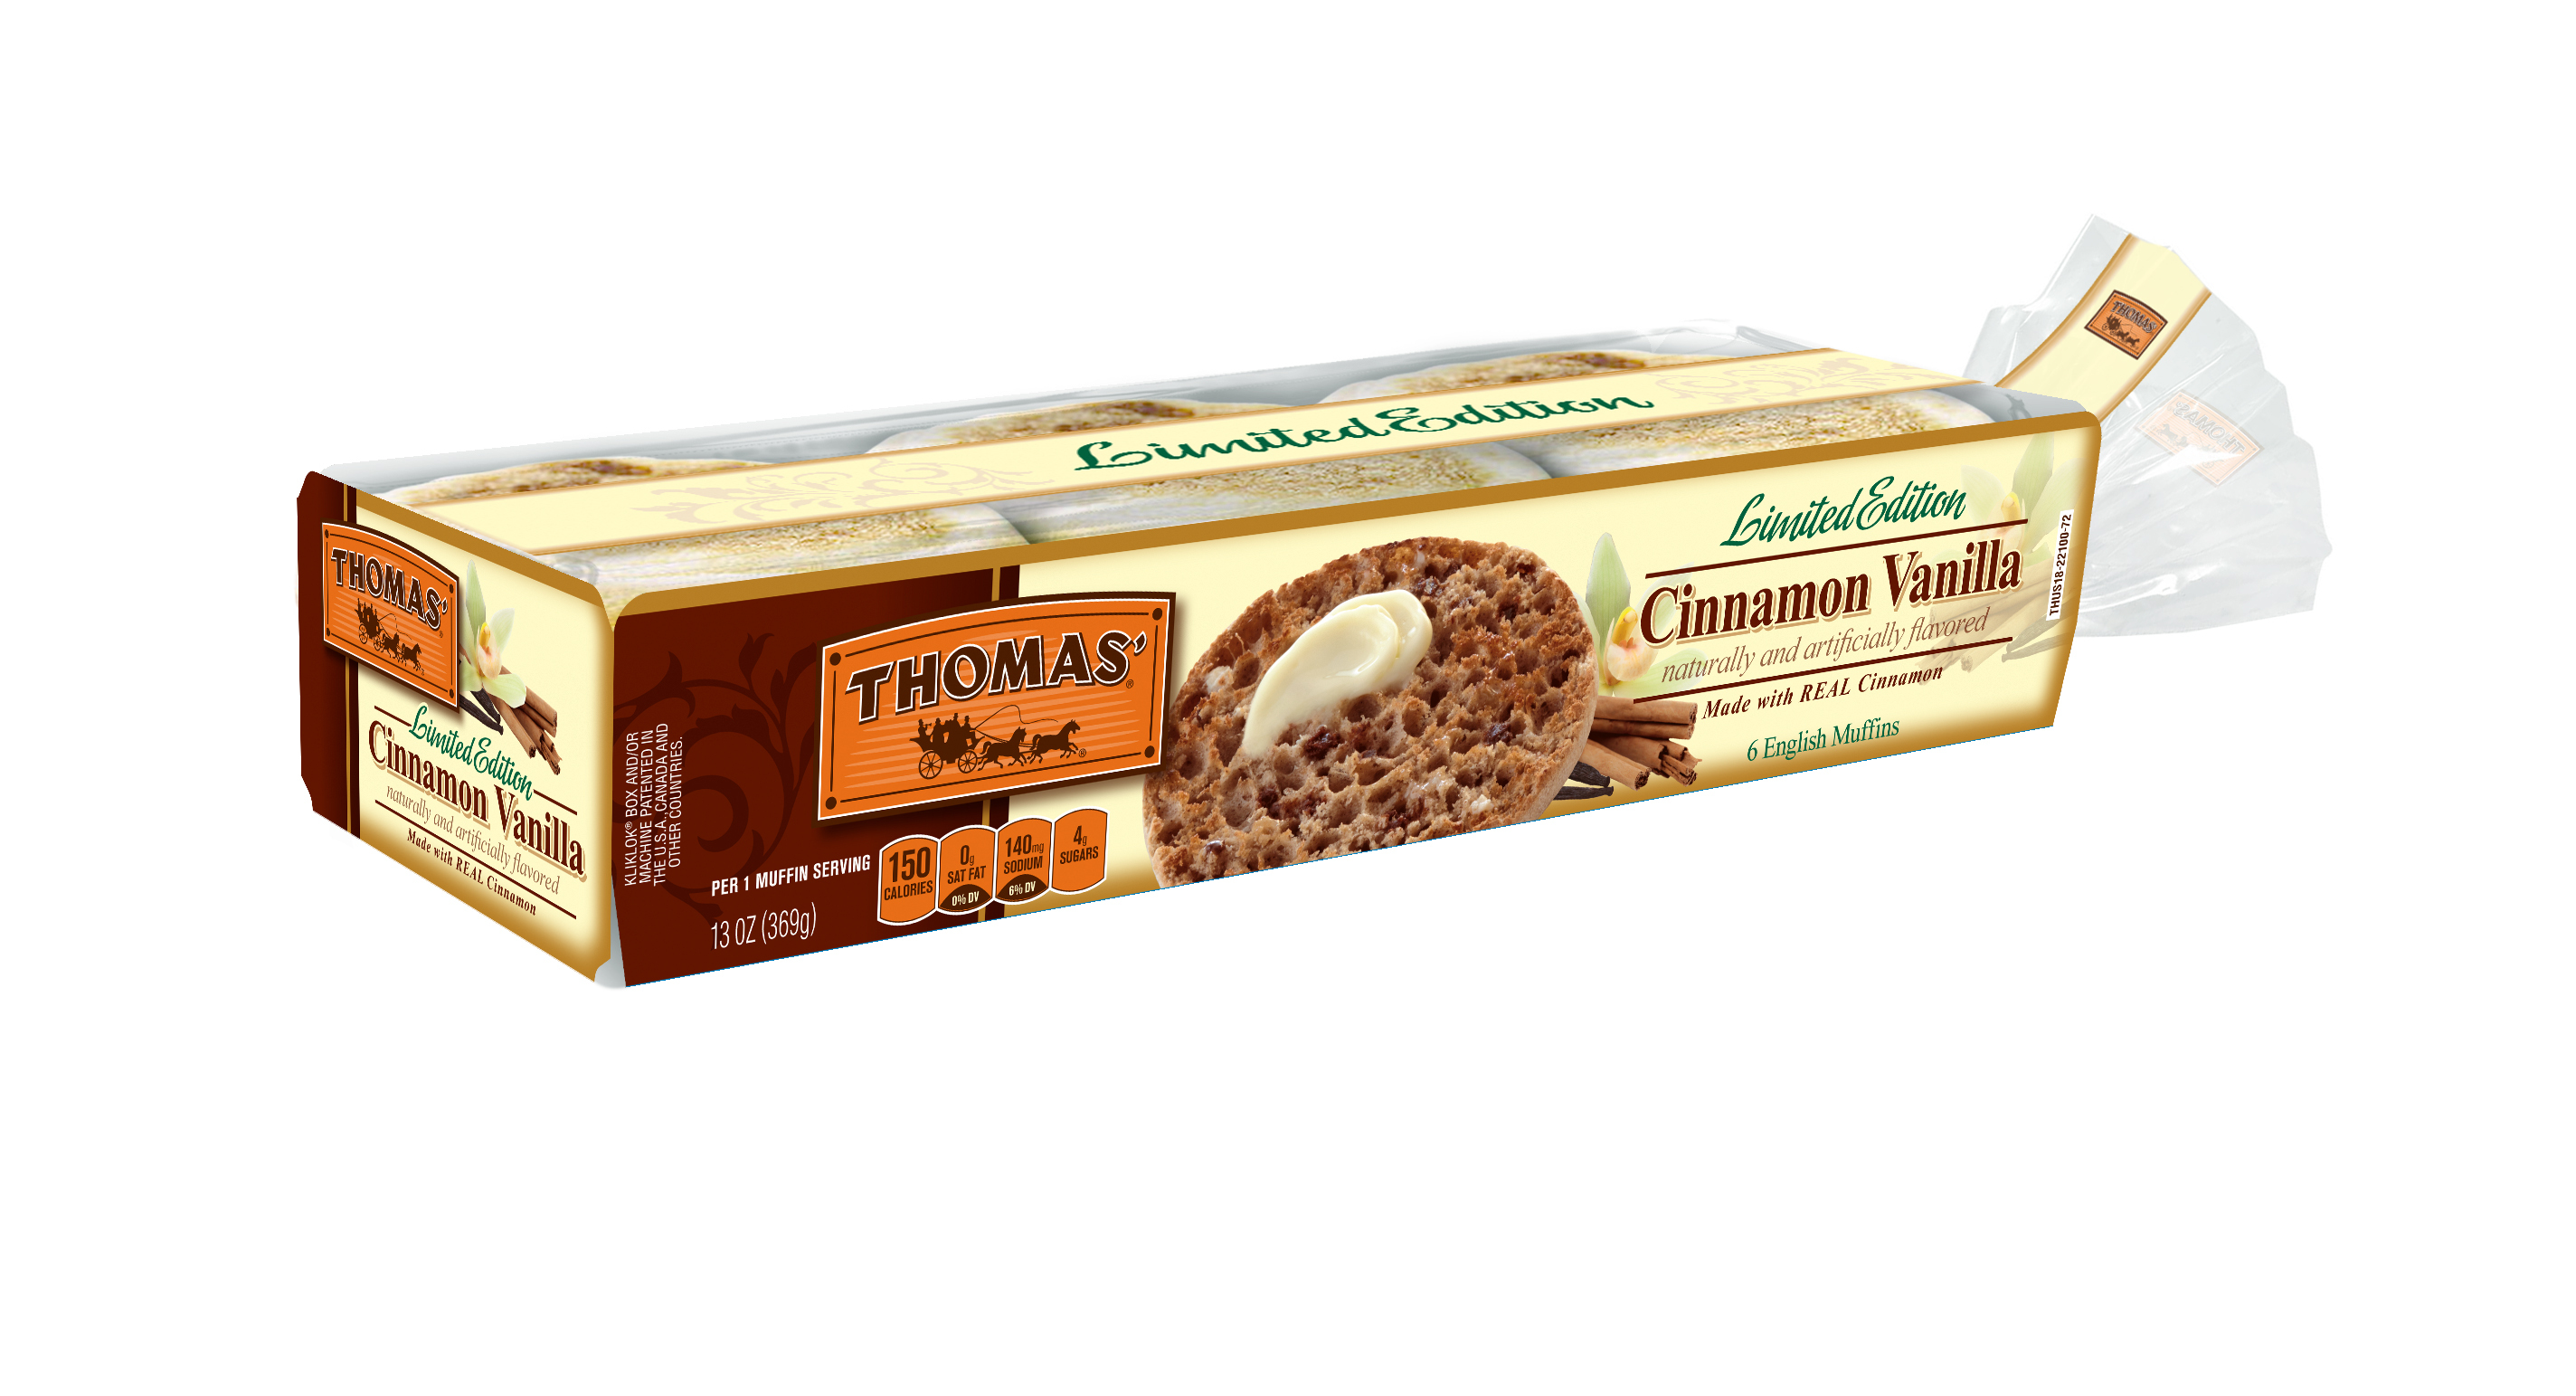 Thomas' is introducing its flavor of the year: Cinnamon Vanilla English Muffins (Photo: Business Wire)